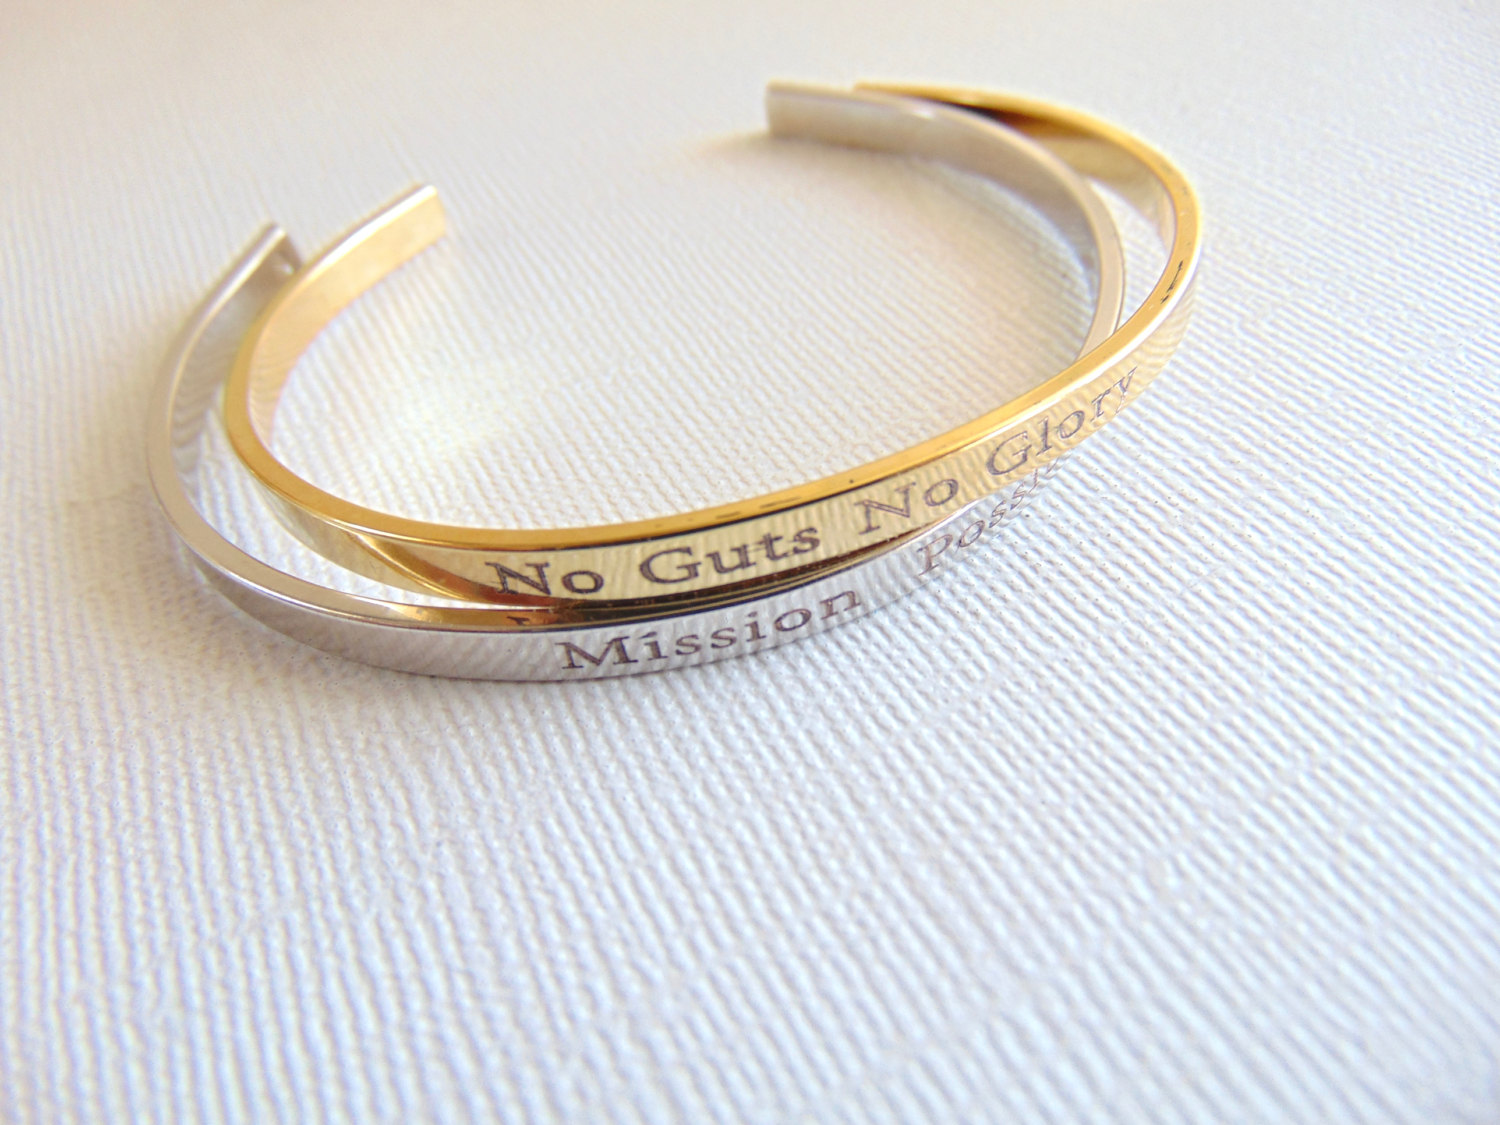 ea0f6dde9bc8 Personalized gold   silver cuff bracelet custom text